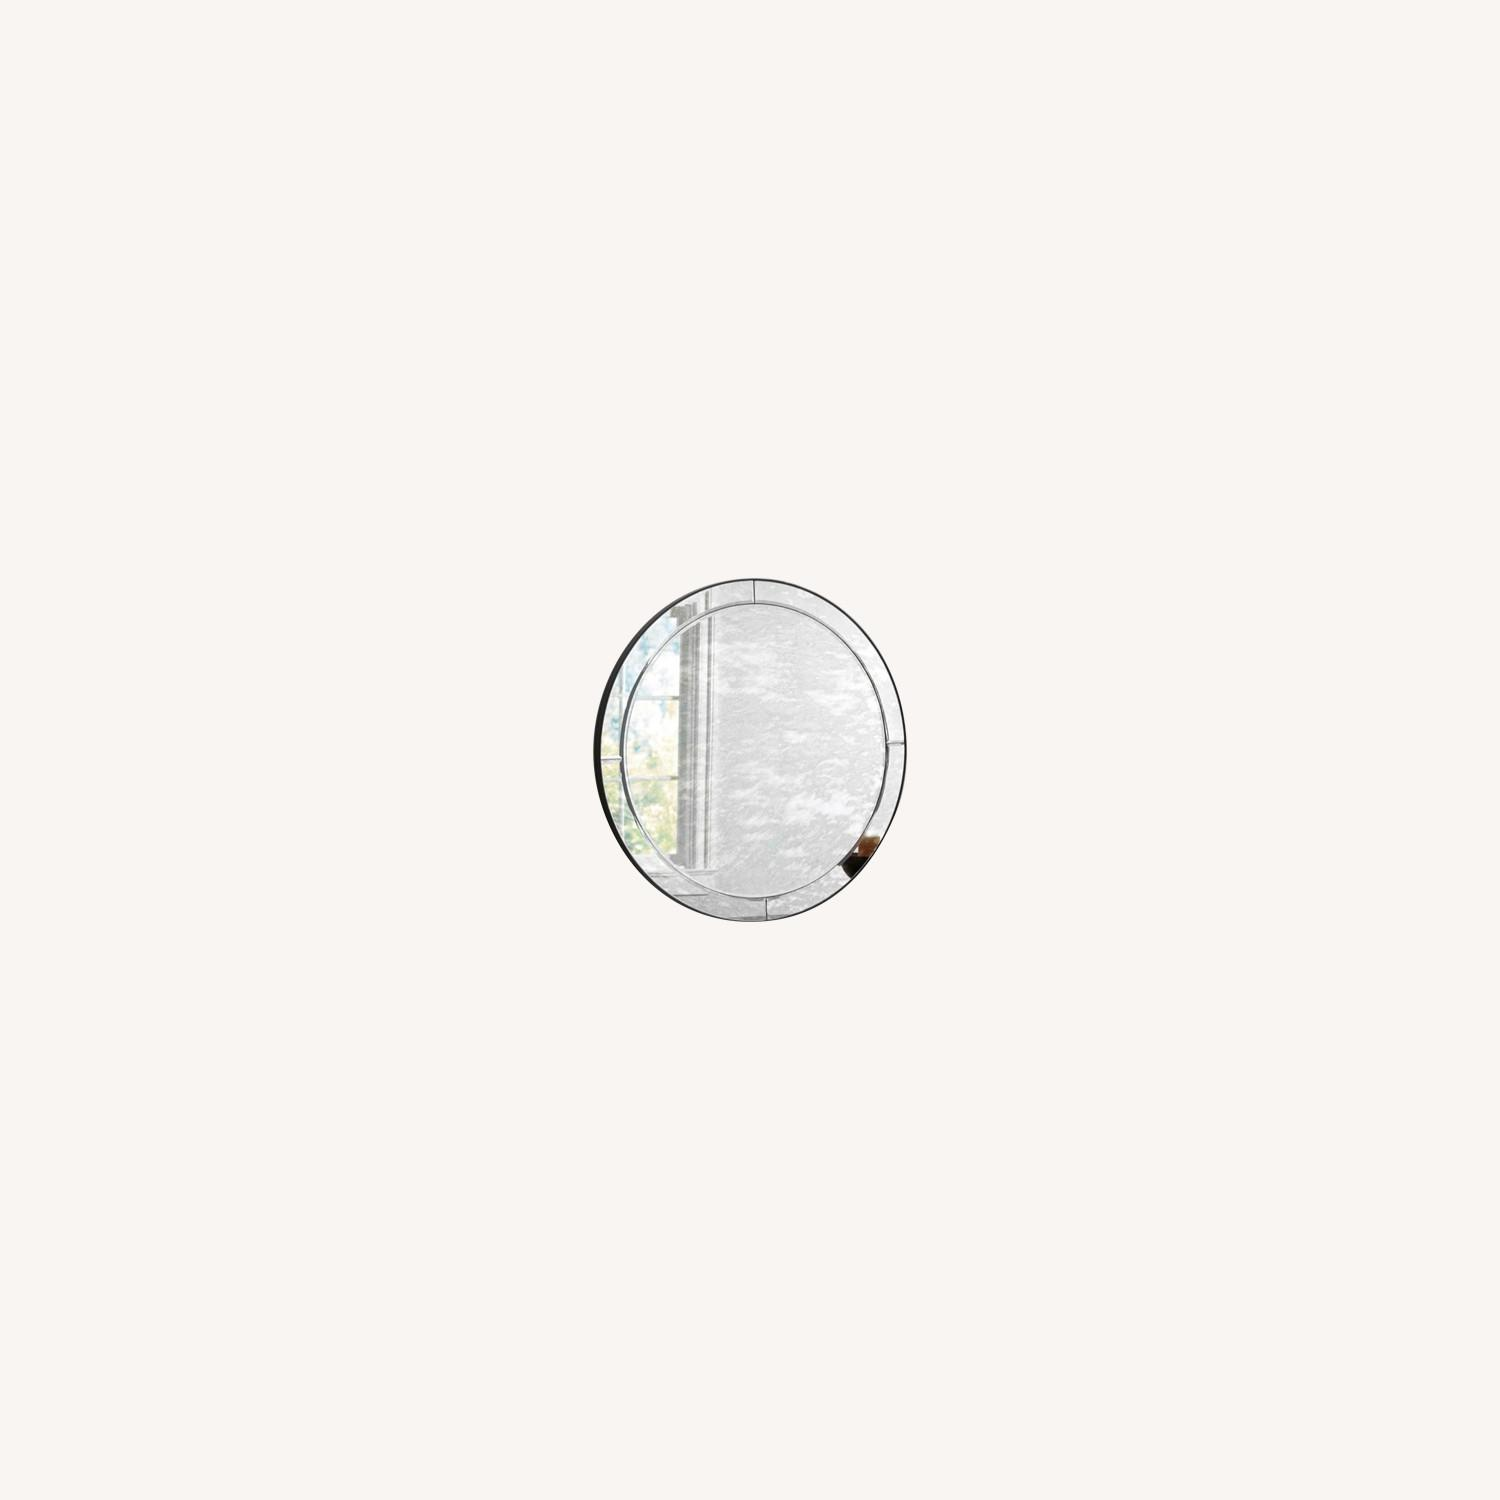 Pottery Barn Walker Antiqued Round Glass Mirror - image-0